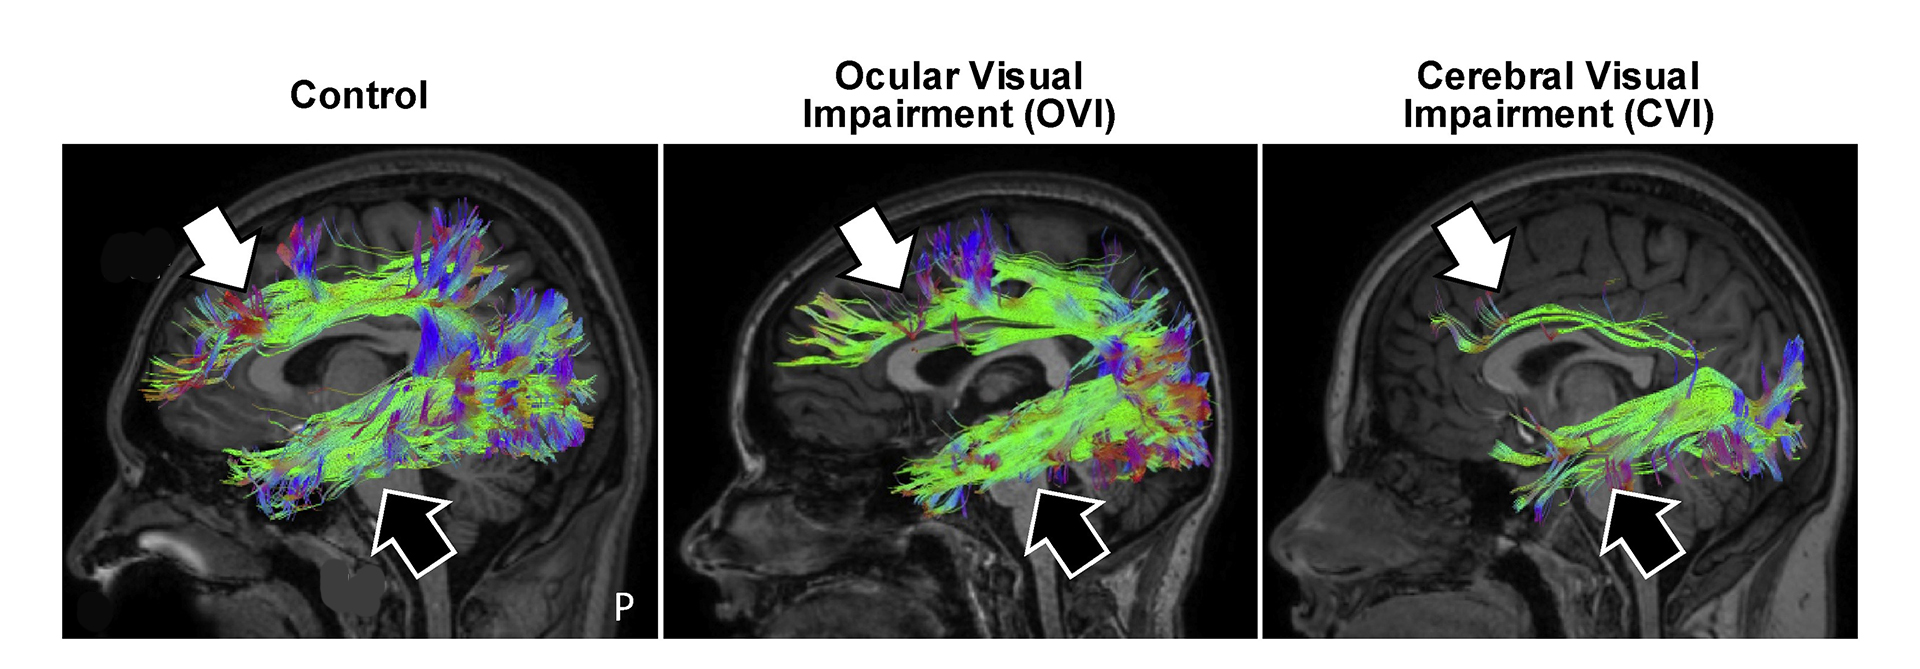 Diffusion based imaging reveals that dorsal (white arrow) and ventral (black) visual processing streams remain intact in people with ocular causes of visual impairment, but are markedly reduced in individuals with CVI (particularly the dorsal stream implicated with spatial processing). 9